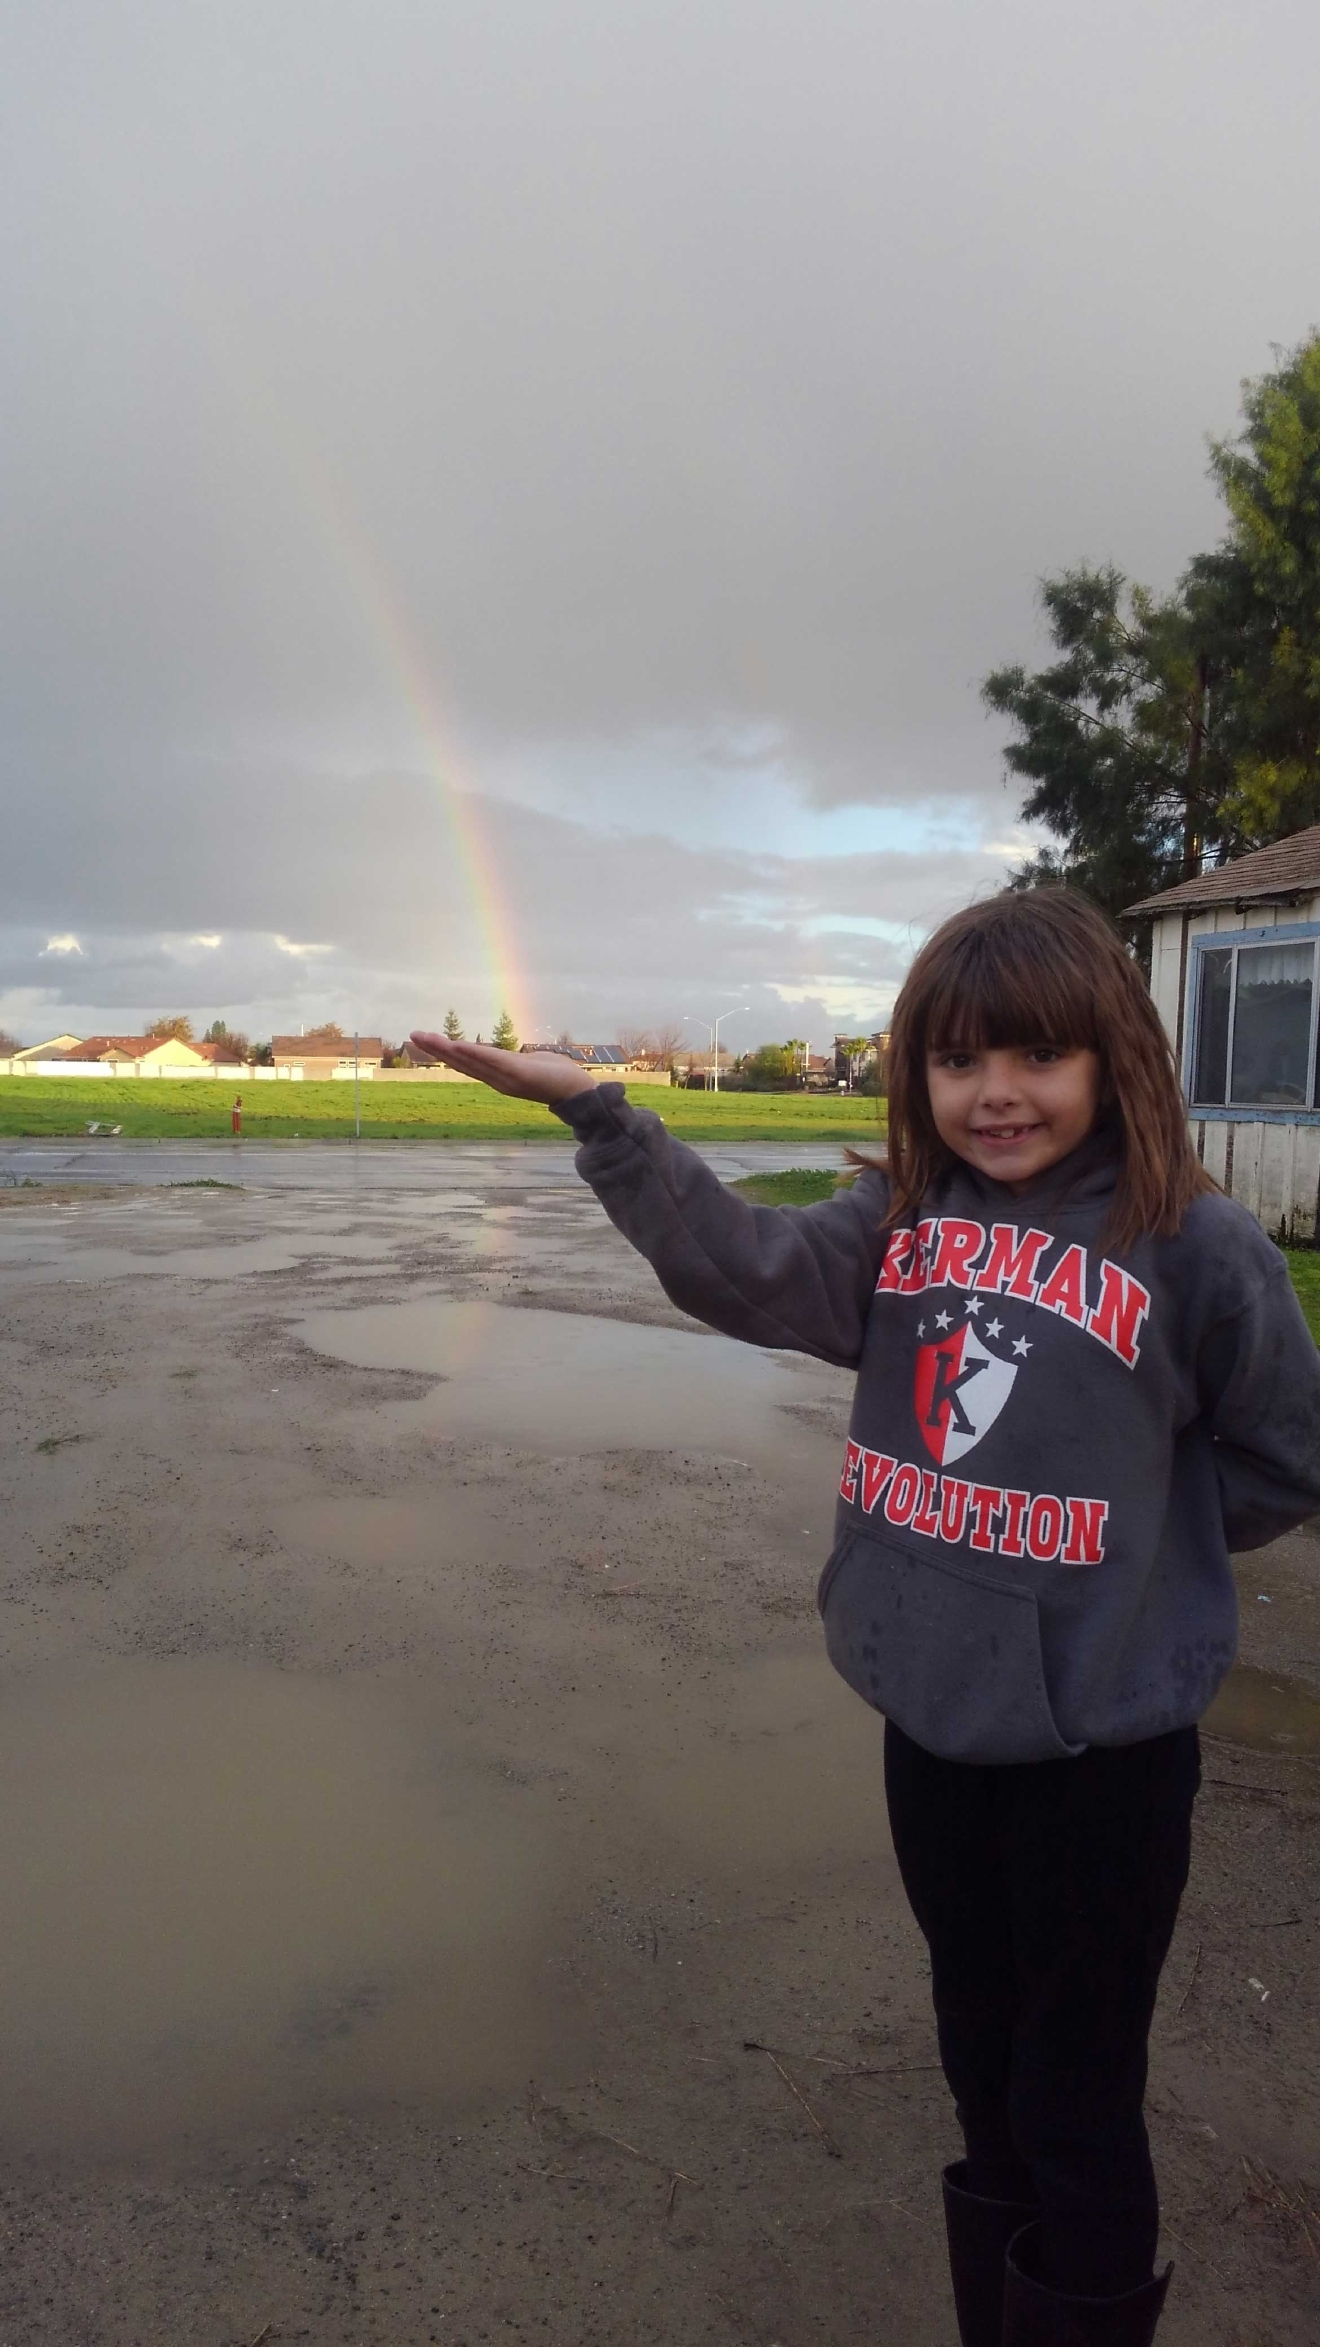 Catching the rainbow in Kerman by Shavawn Gentry 1-23-17